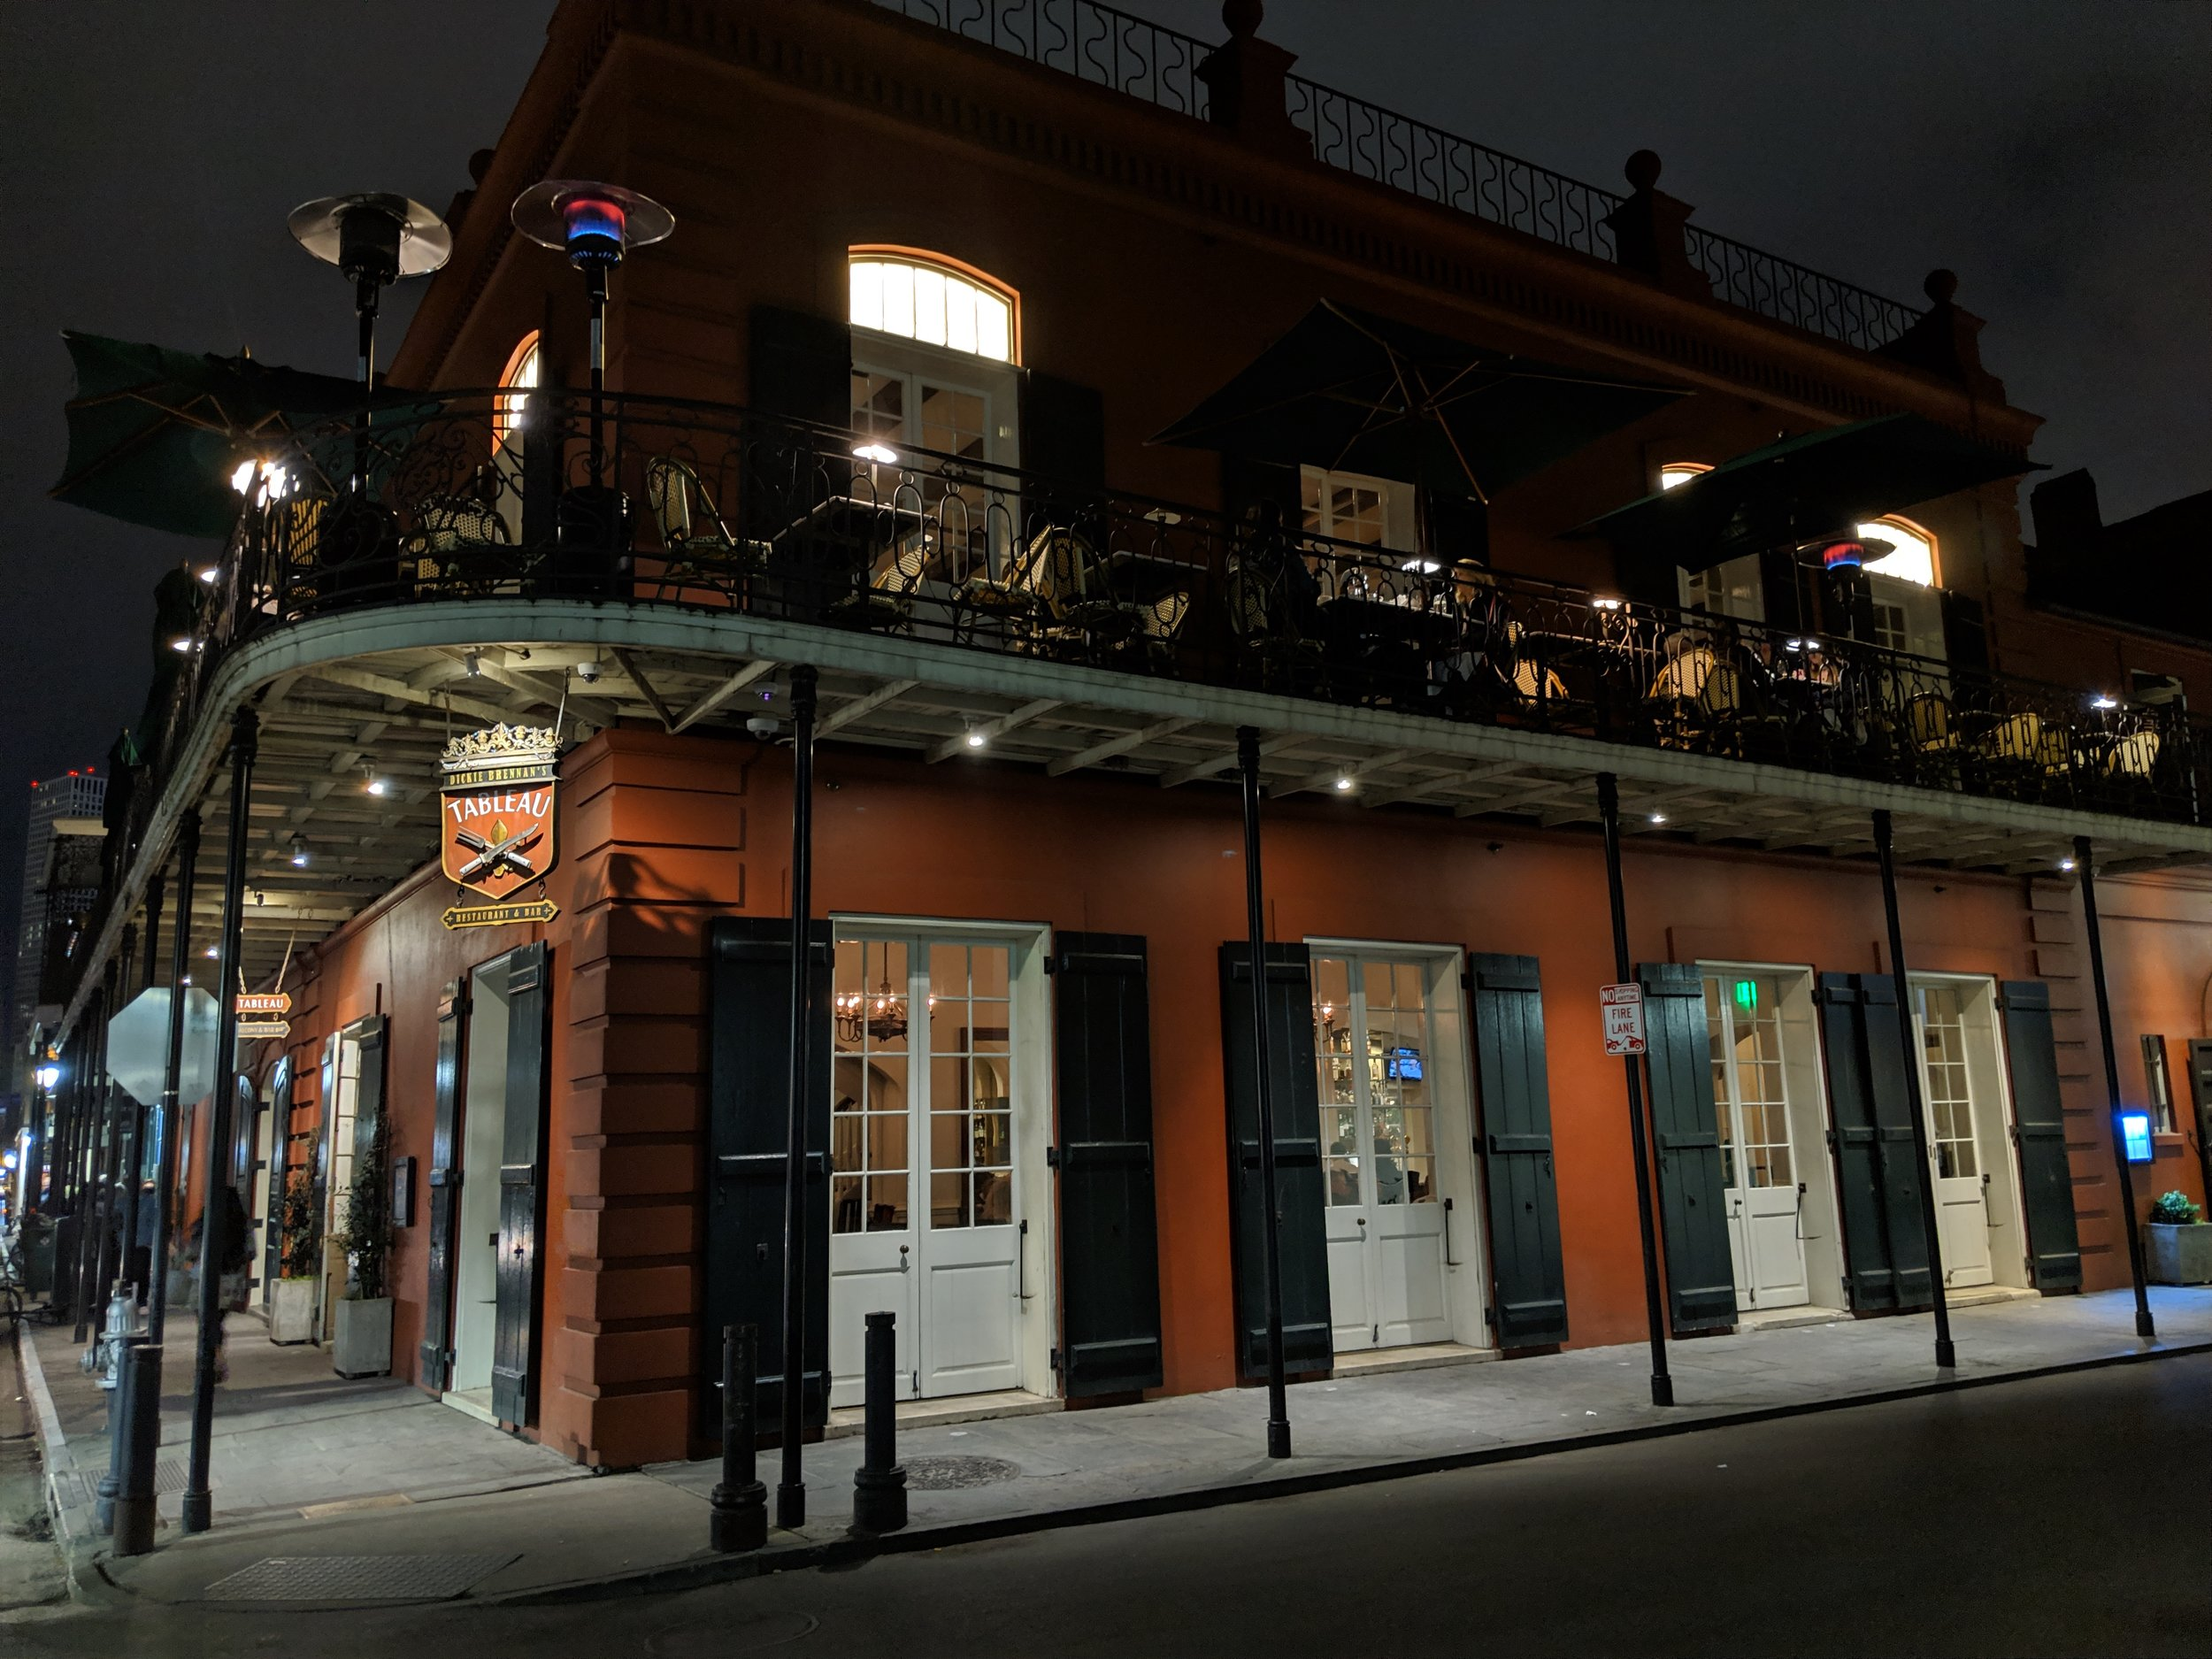 I missed dinner in order to make it to my climbing lesson at NOBL in time, but was able to trek down to Jackson Square afterwards for a meal at the wonderfully picturesque Tableau.